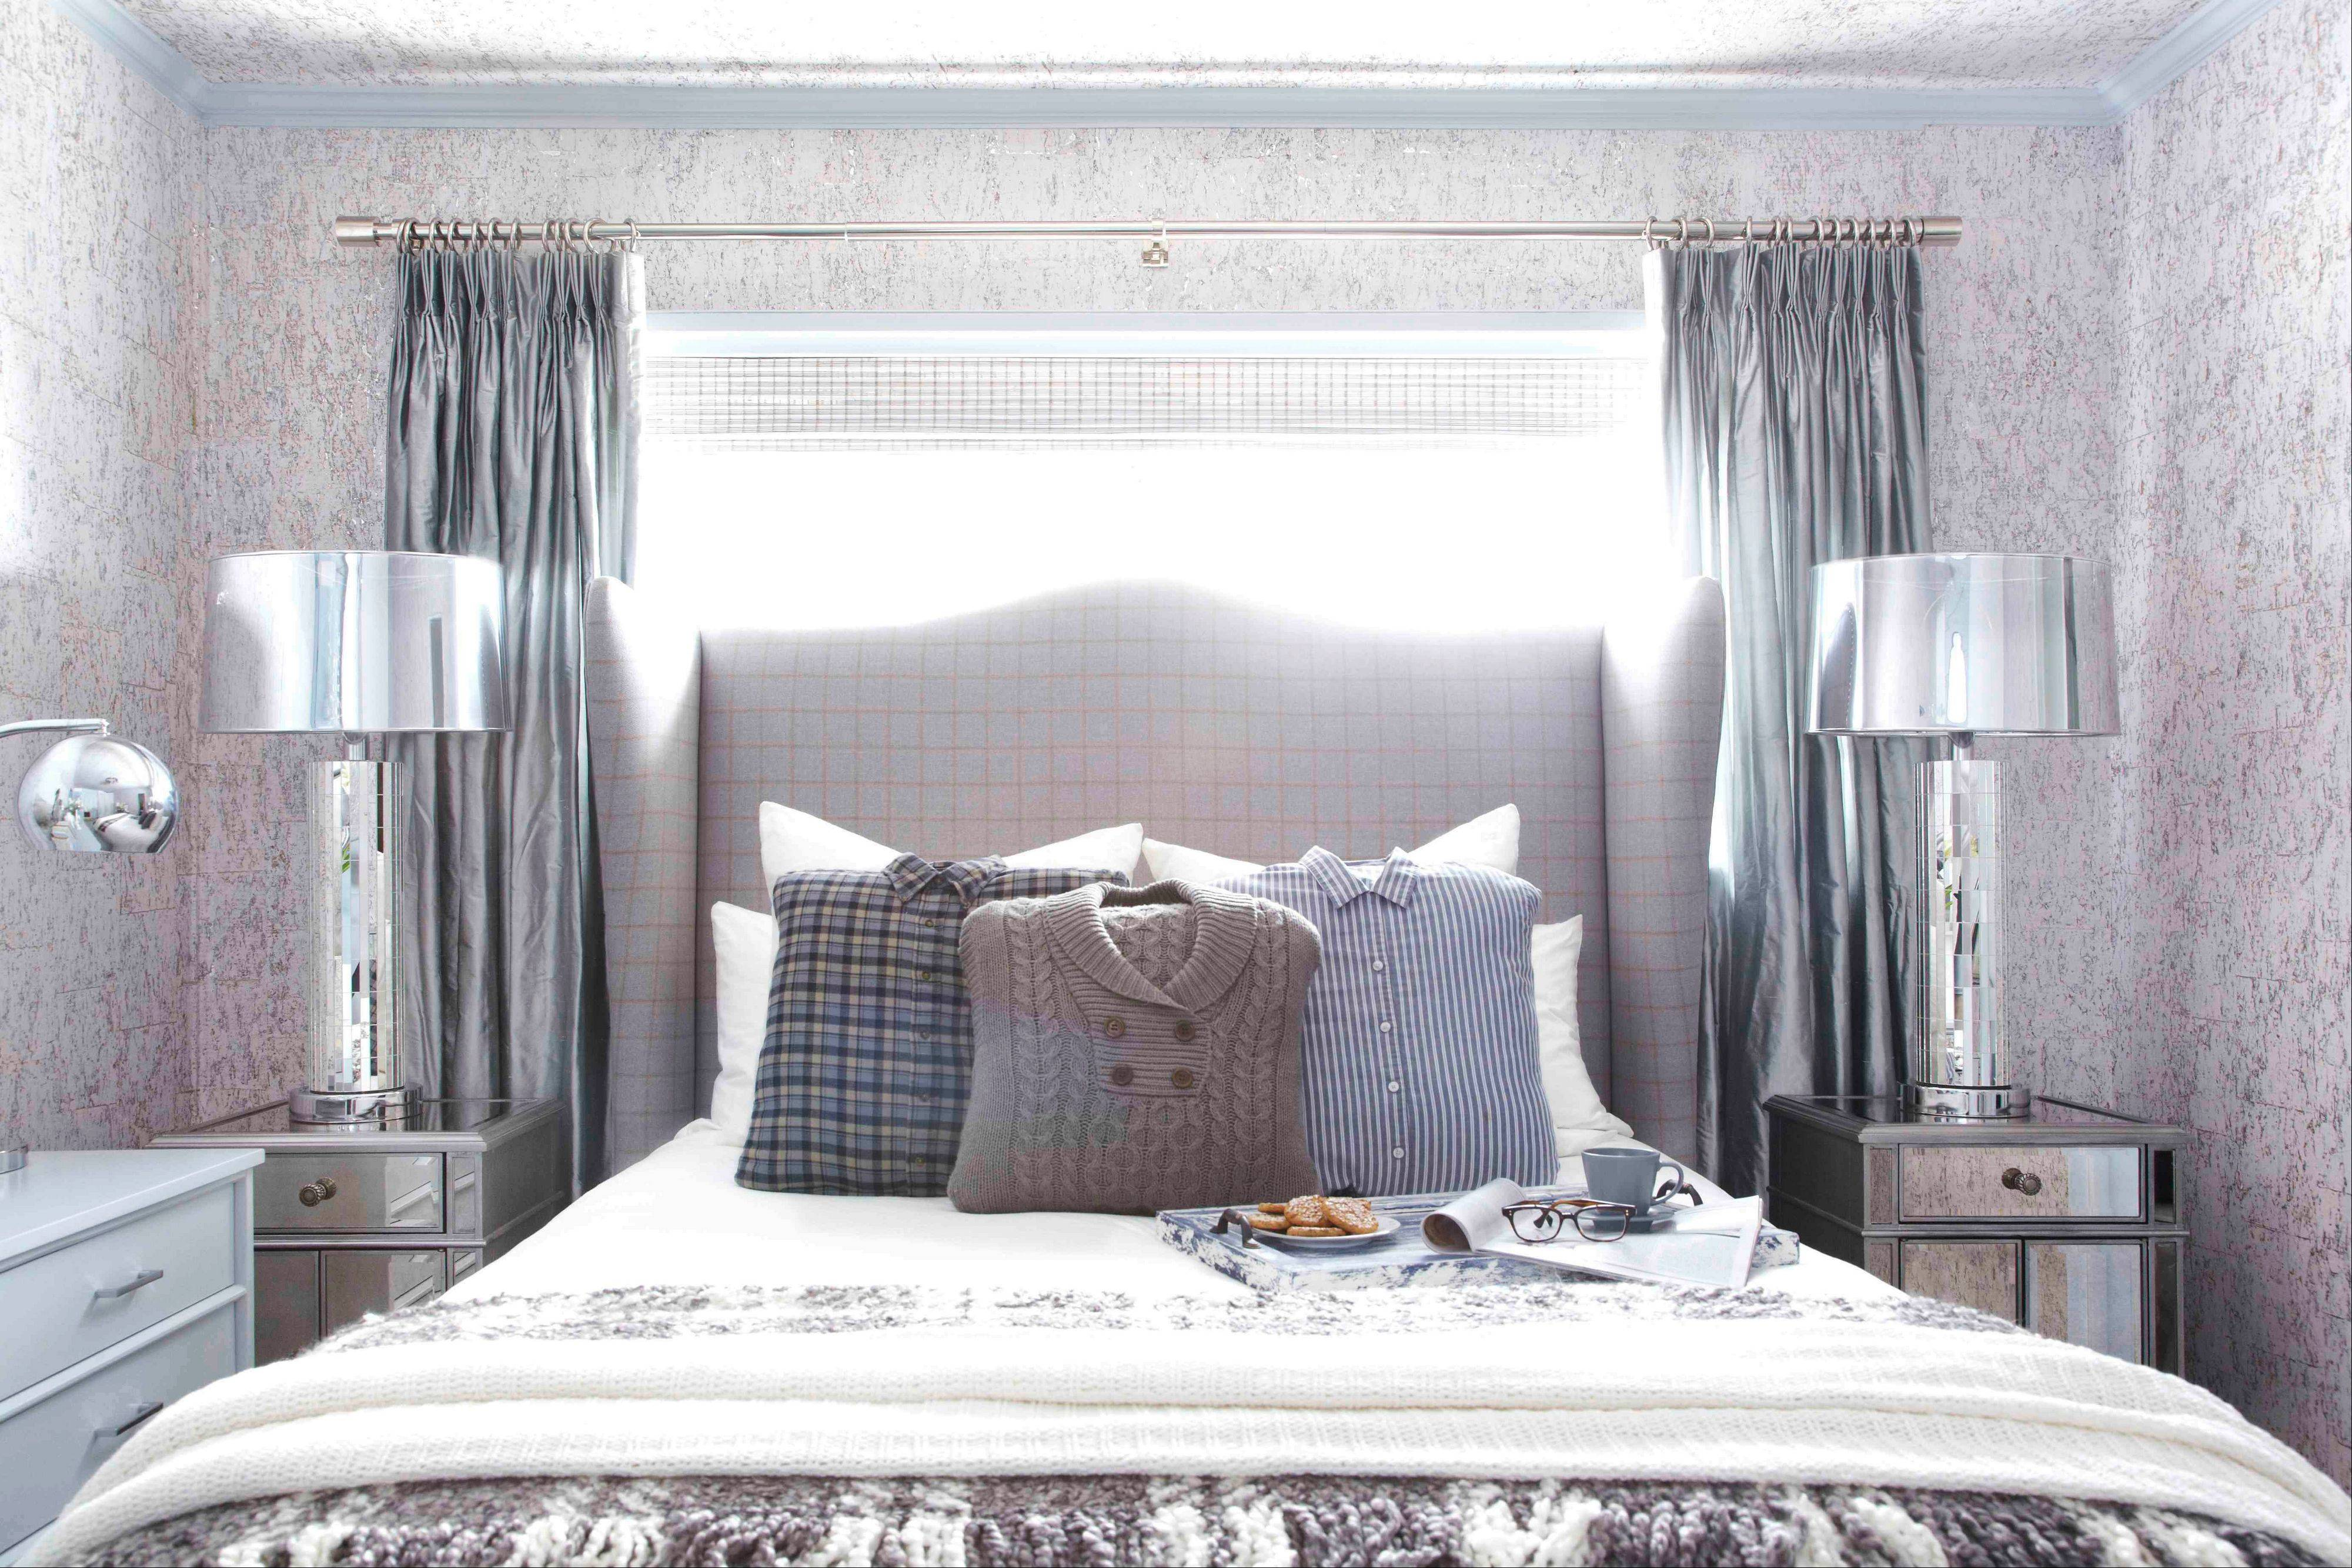 Designer Brian Patrick Flynn of HGTV.com turns to wintry menswear for inspiration when creating wintry spaces. It includes a custom headboard made from men's suiting fabric featuring a check print, as well as pillows made from hand-me-down sweaters and flannel shirts.